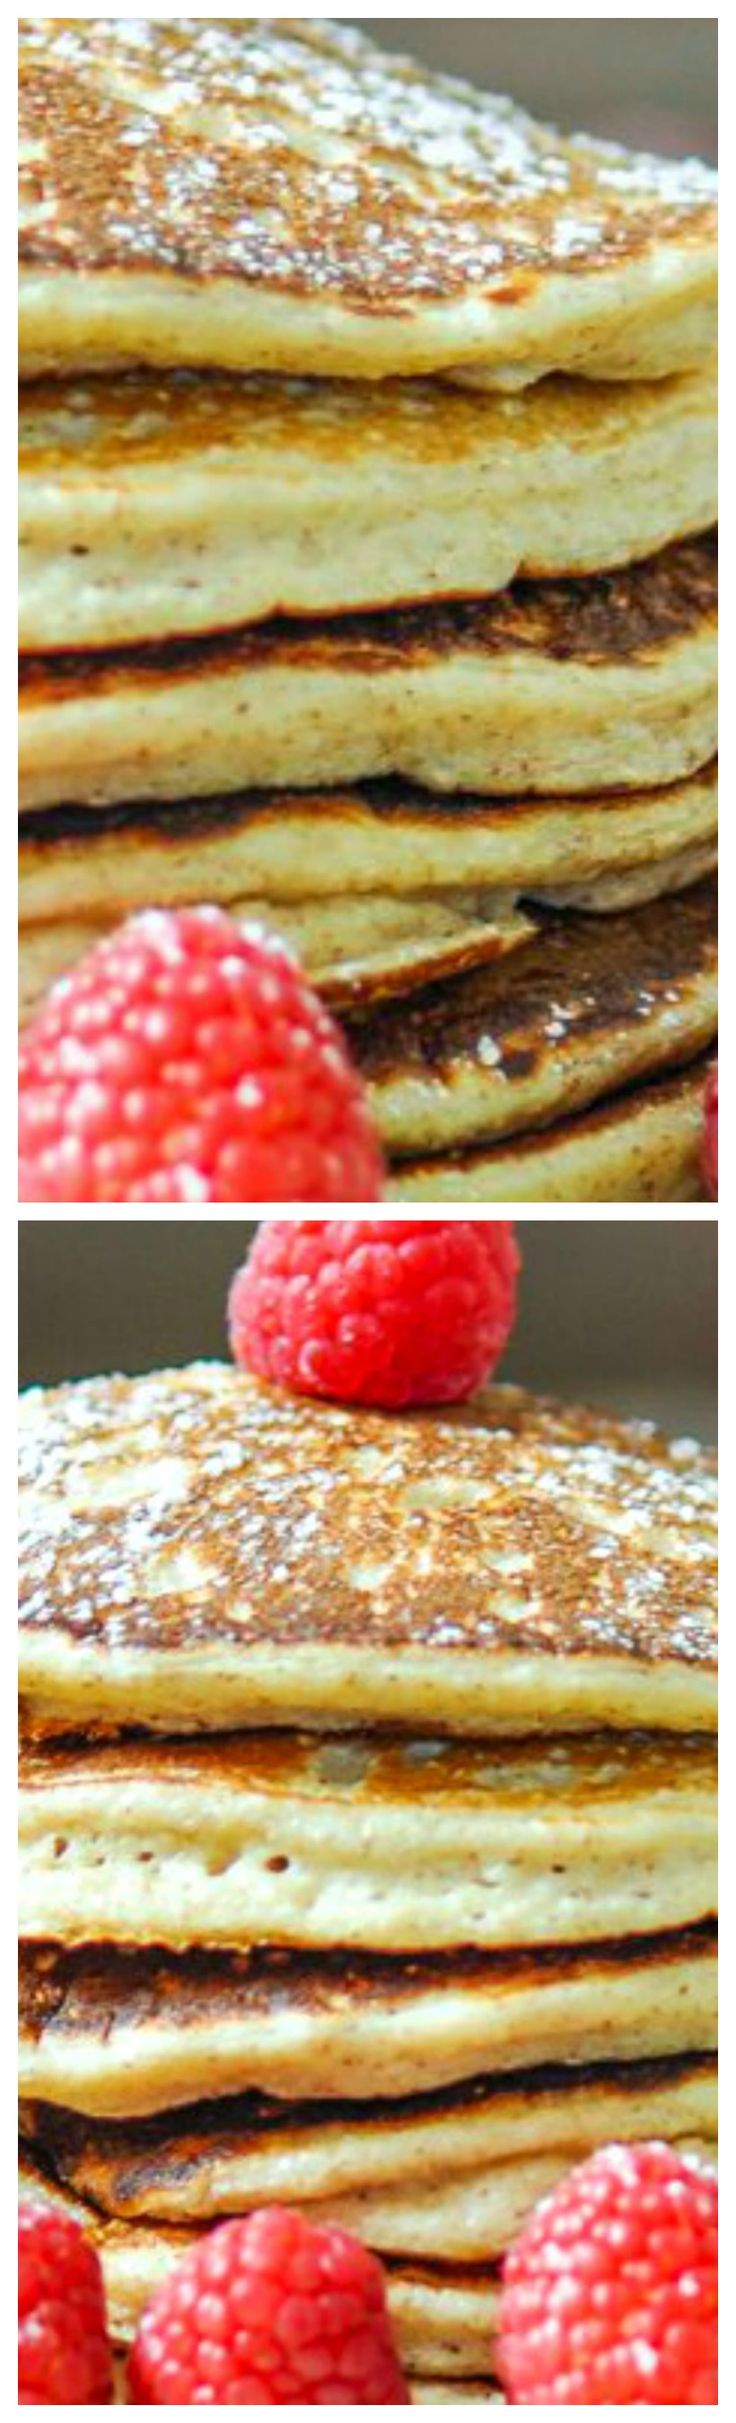 Biggest Loser Pancakes ~ You won't believe the ingredients and you won't believe how good they are at only 220 calories for 3 pancakes.